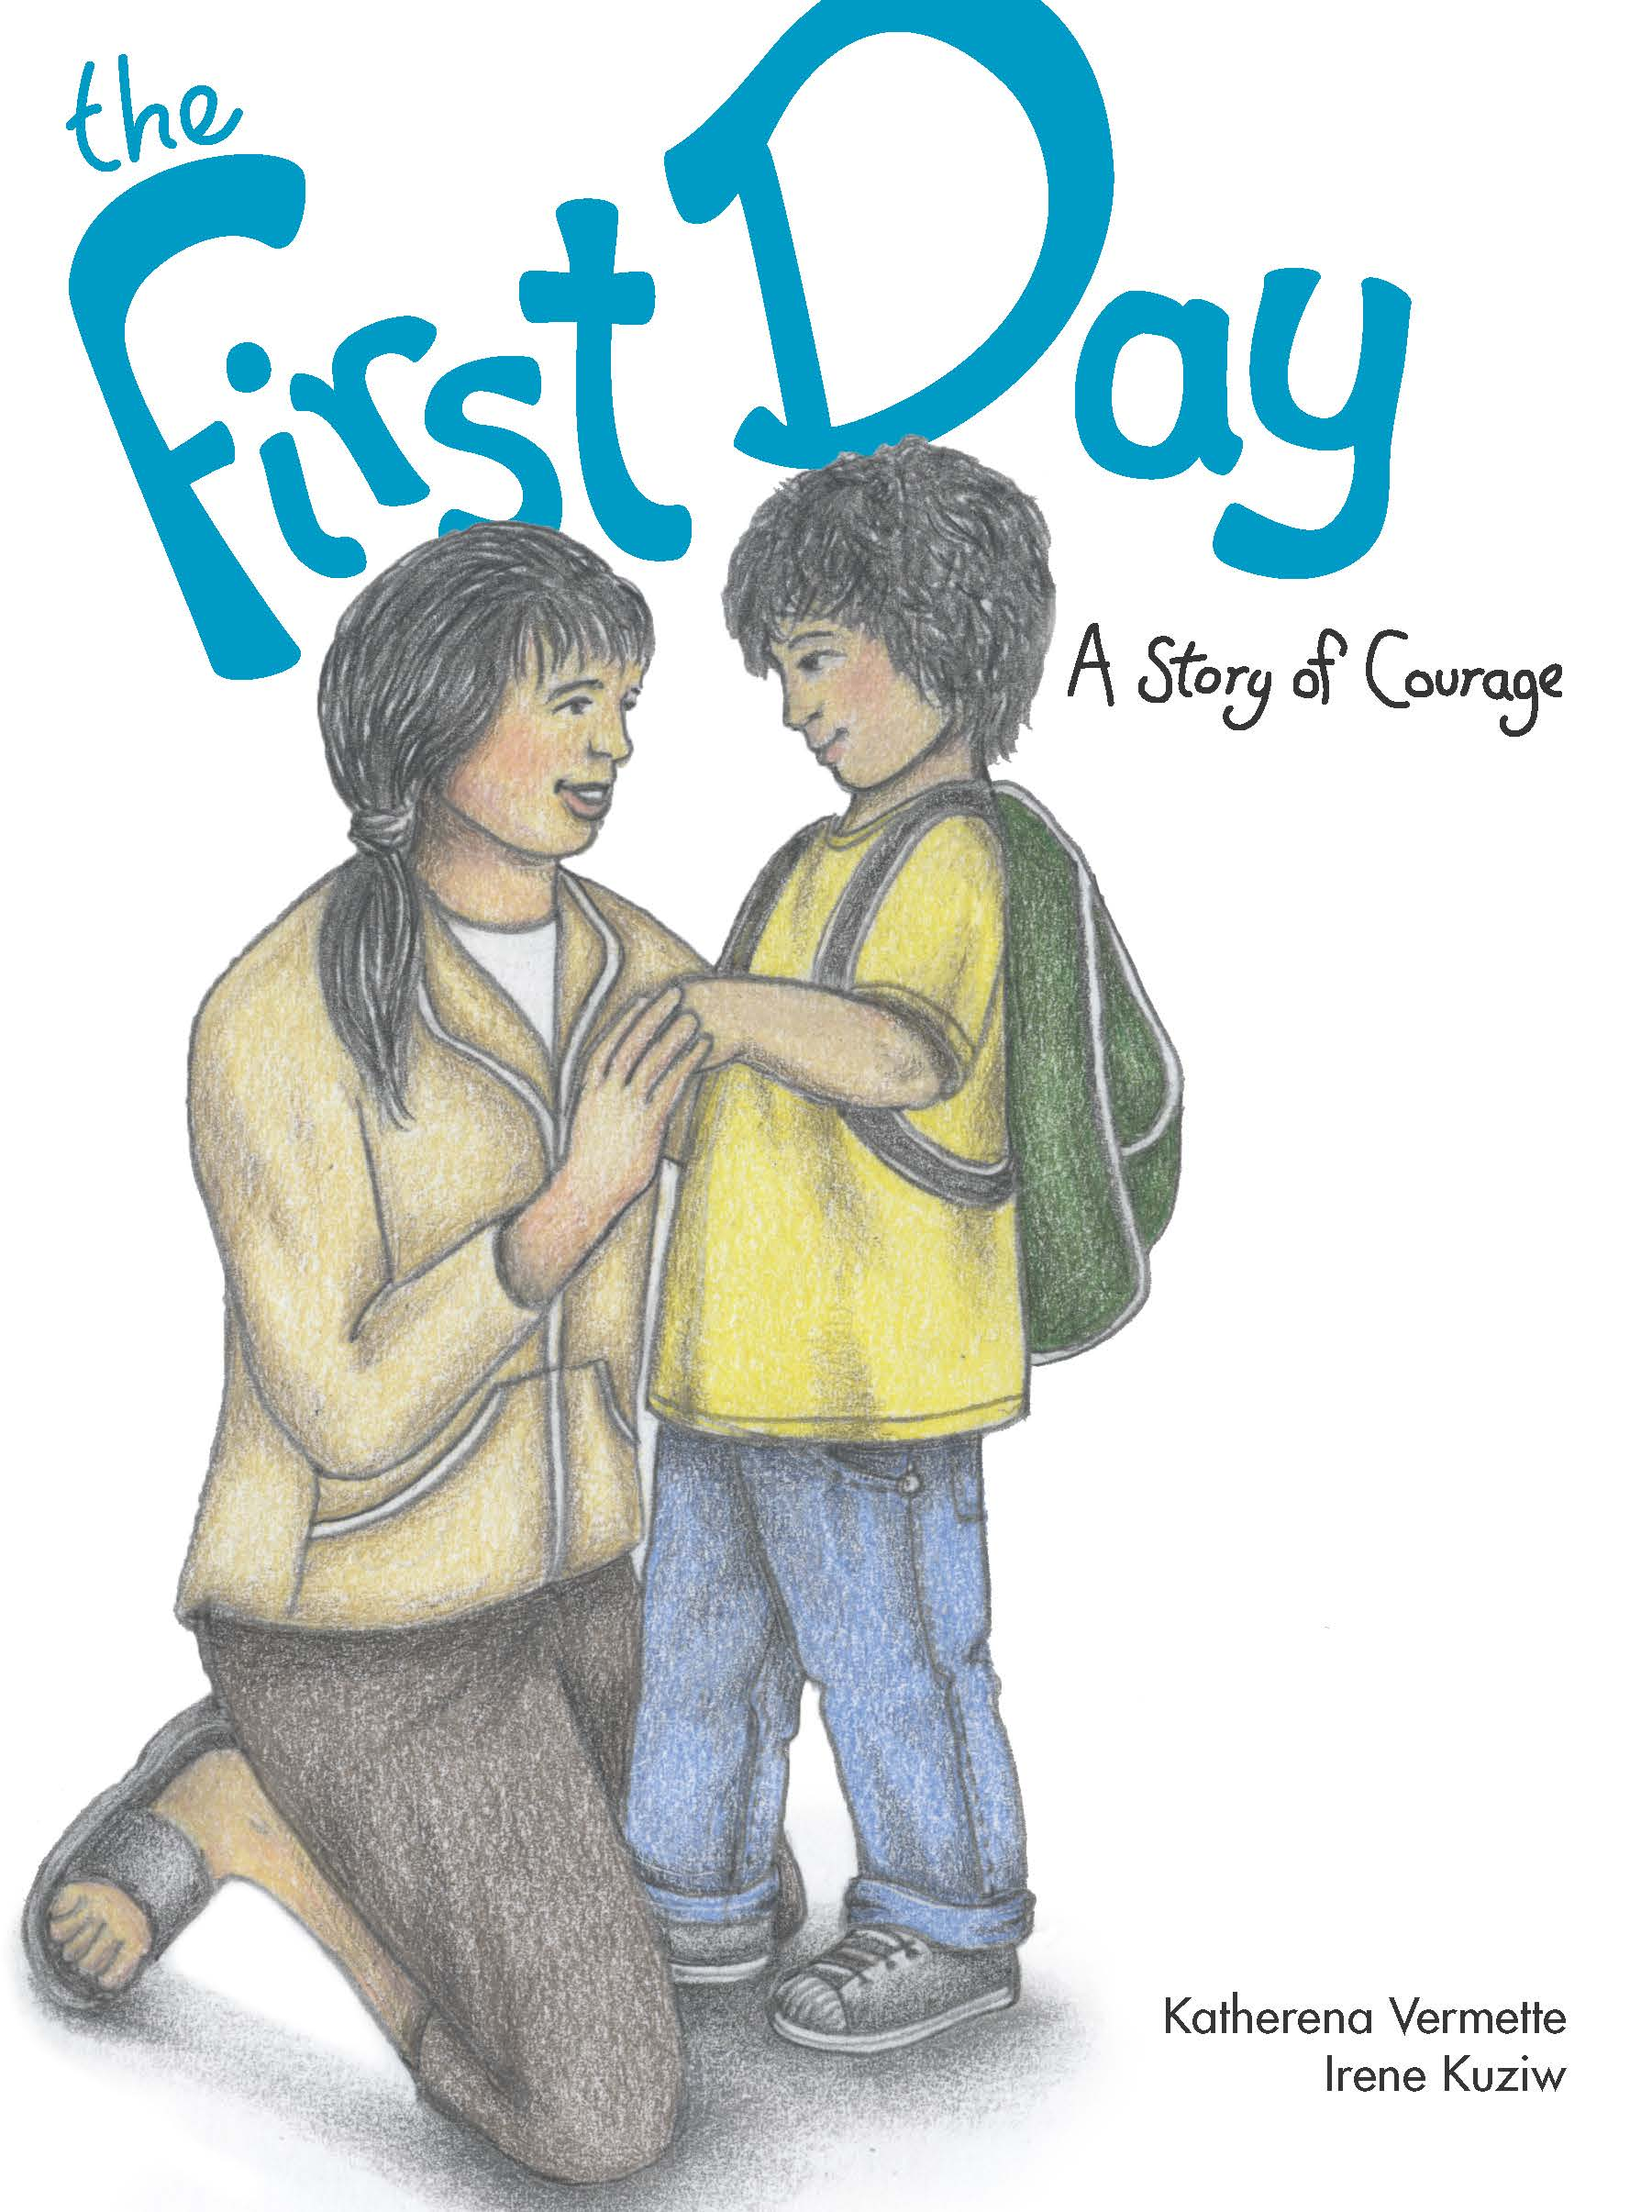 The book cover for The First Day: A Story of Courage by Katherena Vermette.